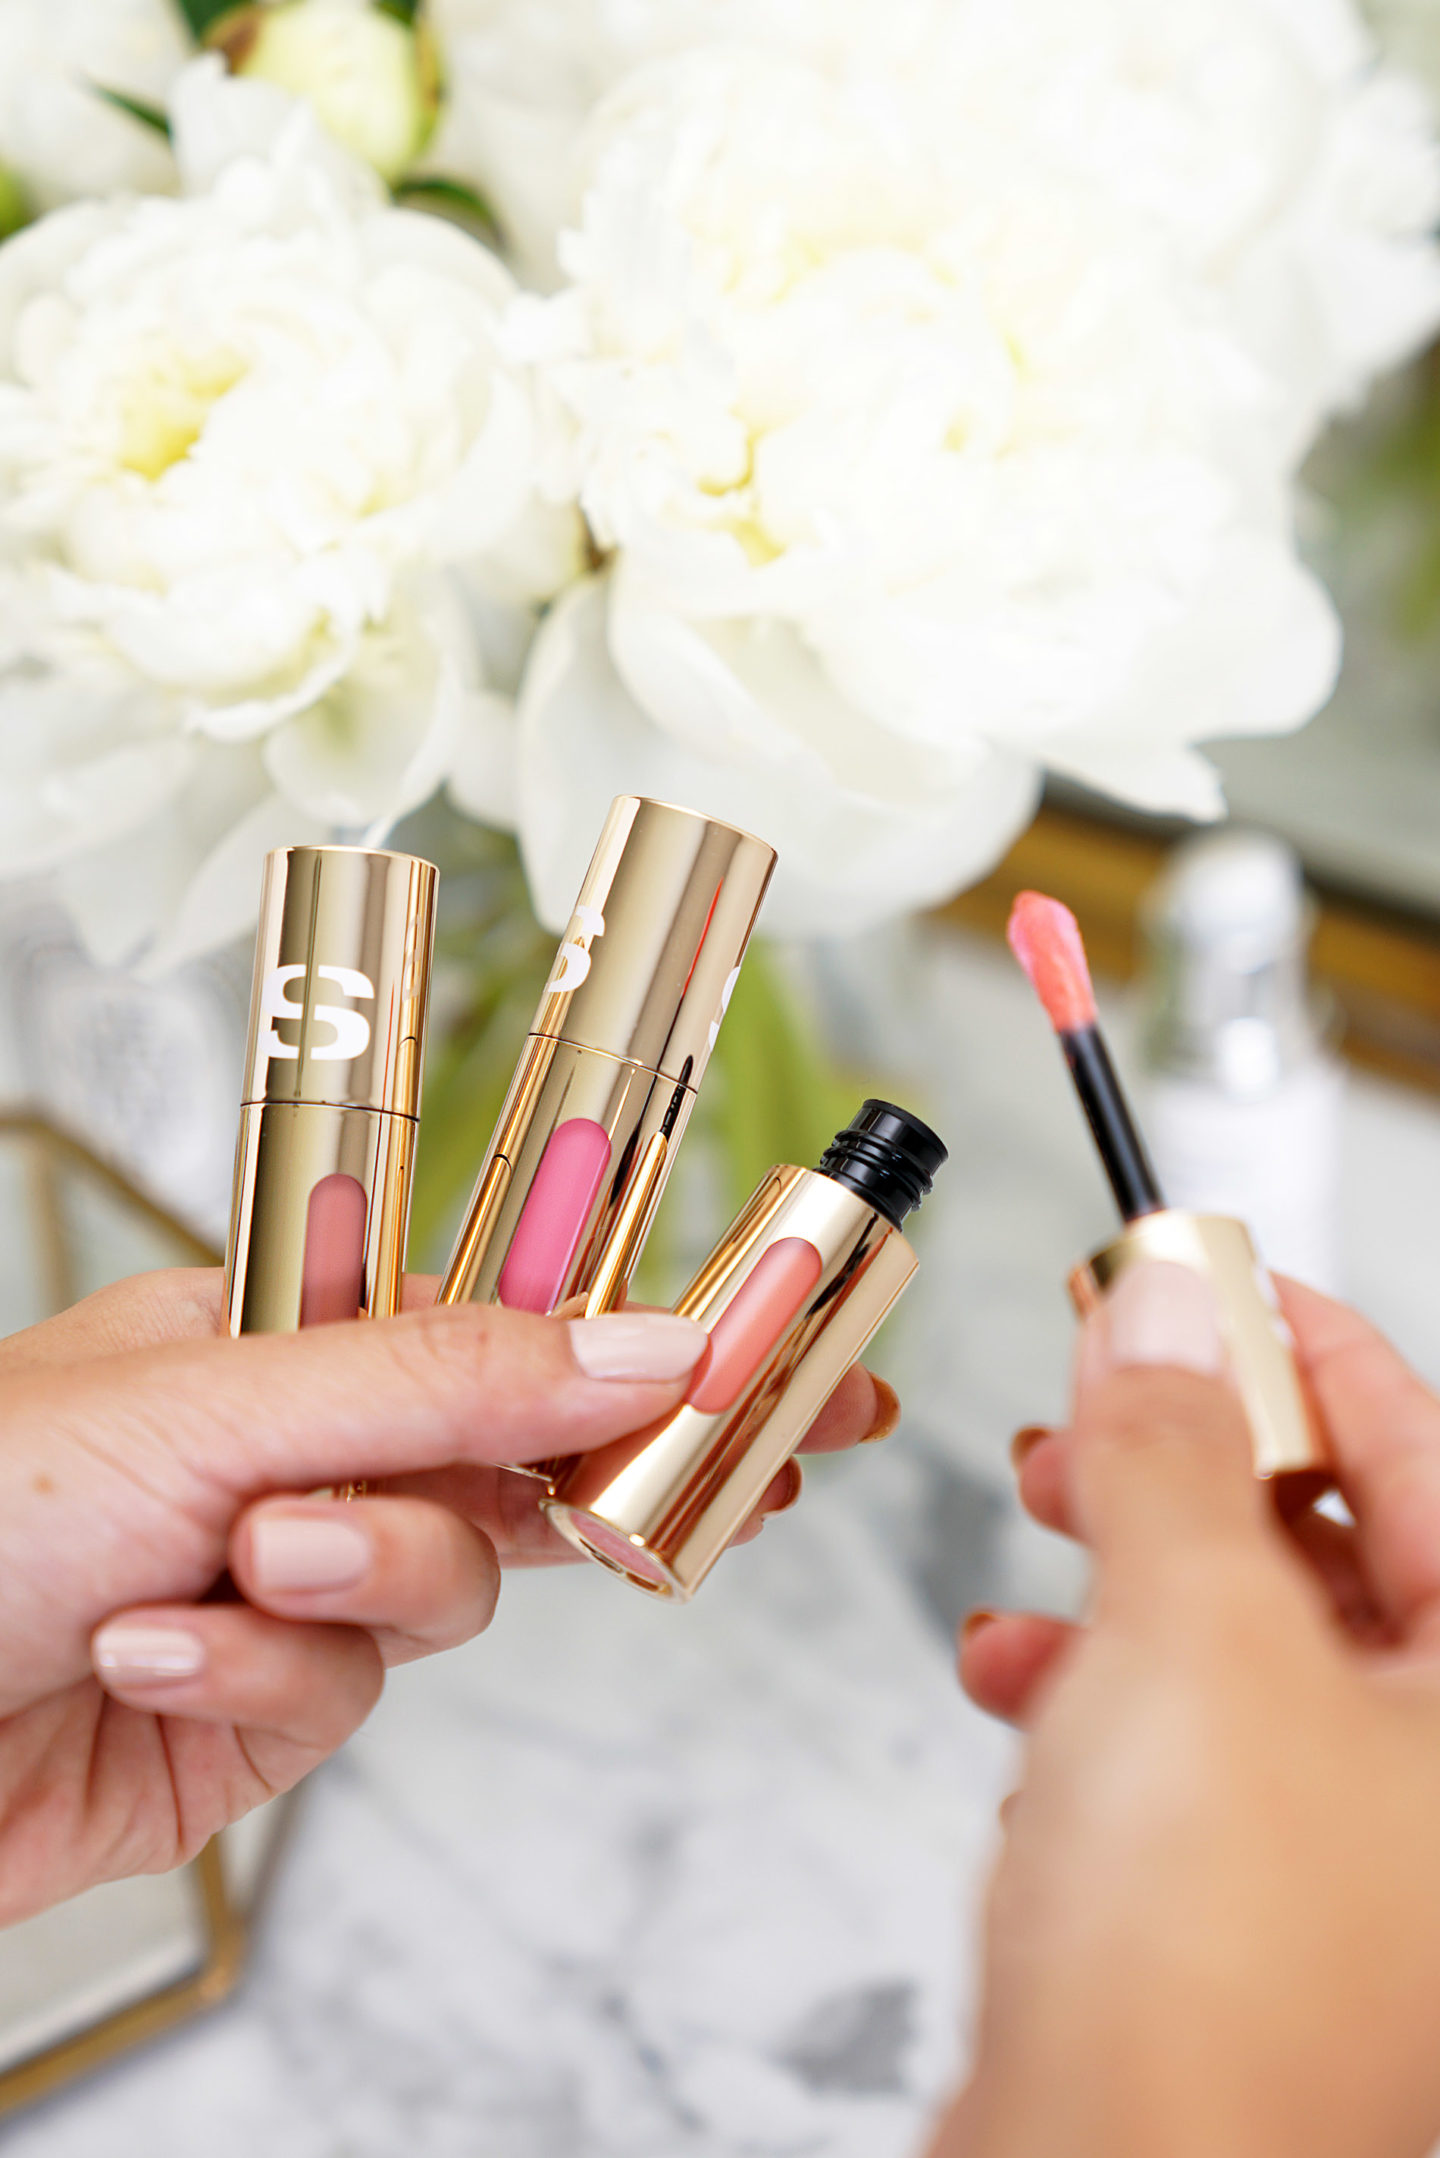 Sisley Phyto Lip Delight Lip Oils | The Beauty Look Book